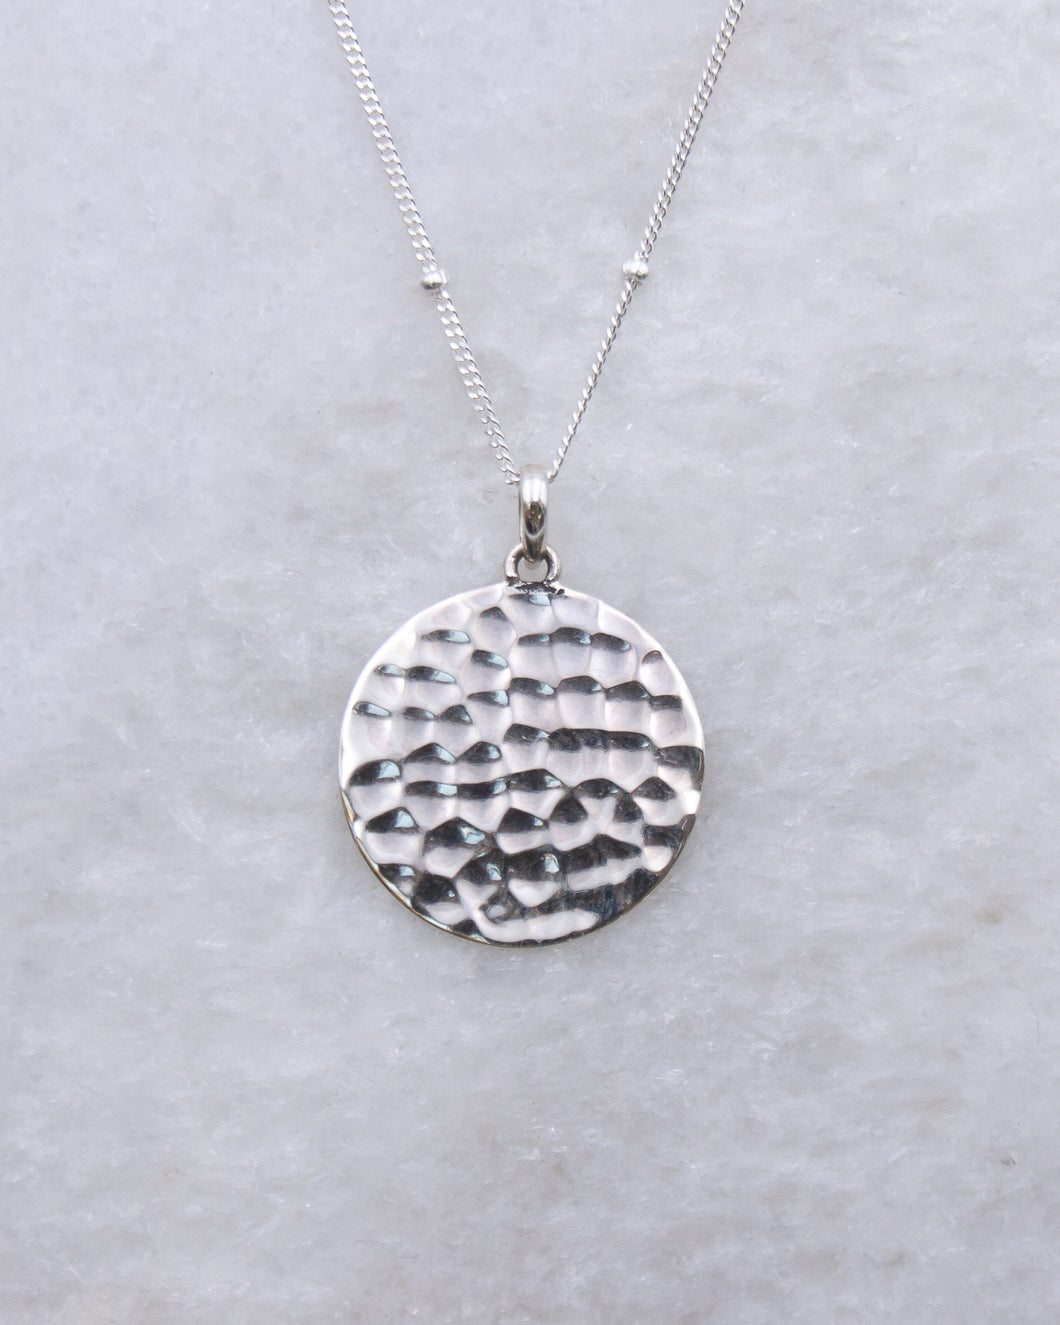 Hammered Coin Pendant Necklace